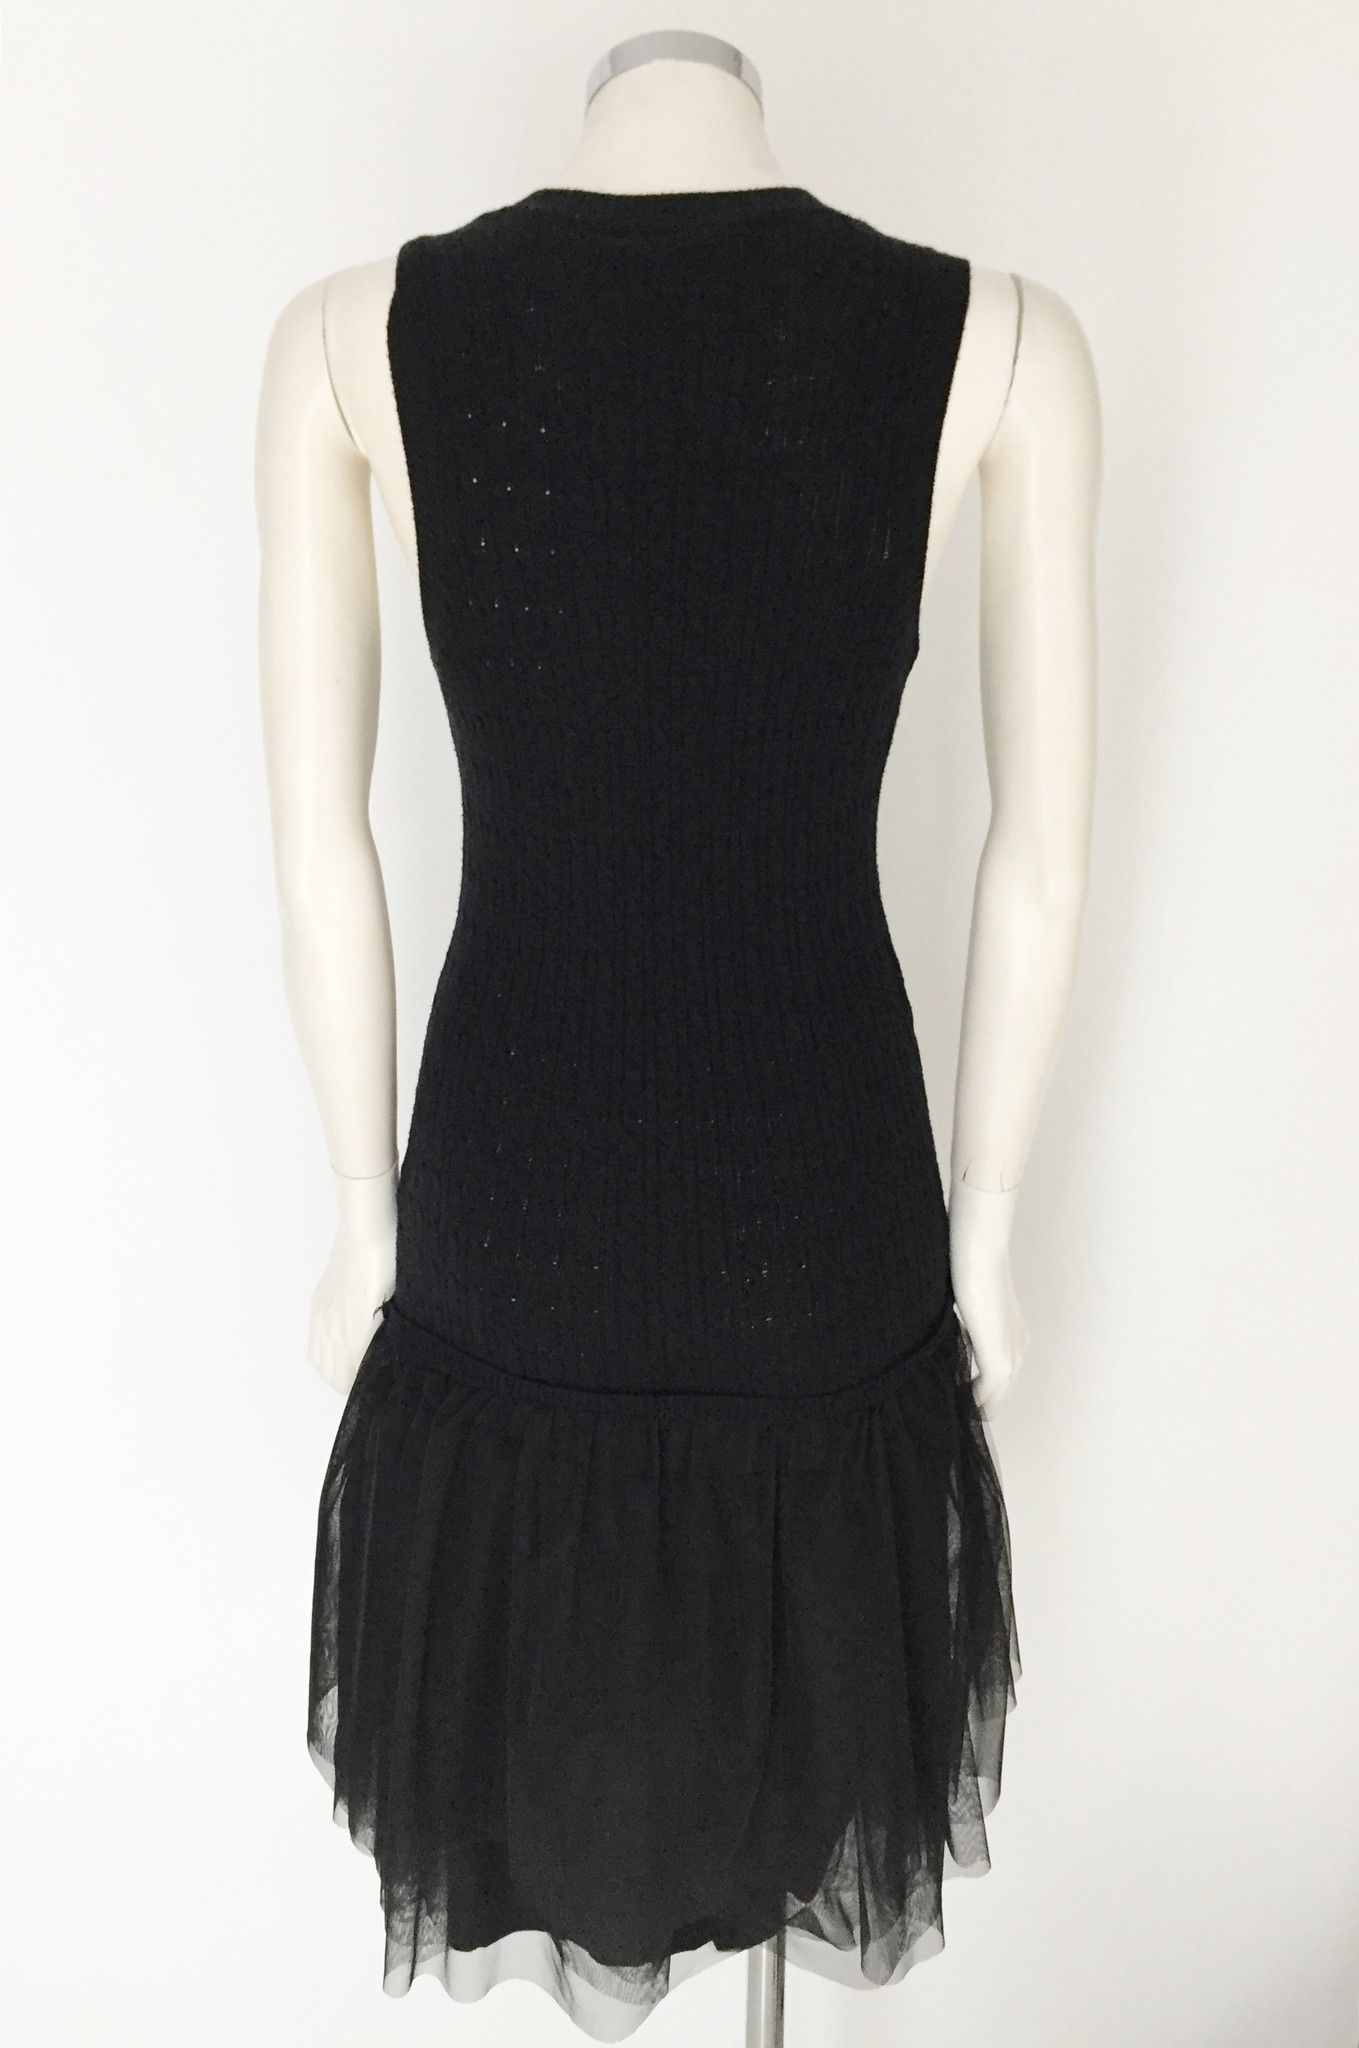 Gil Santucci Wool dress with Skirt and Paillettes Cod.S200